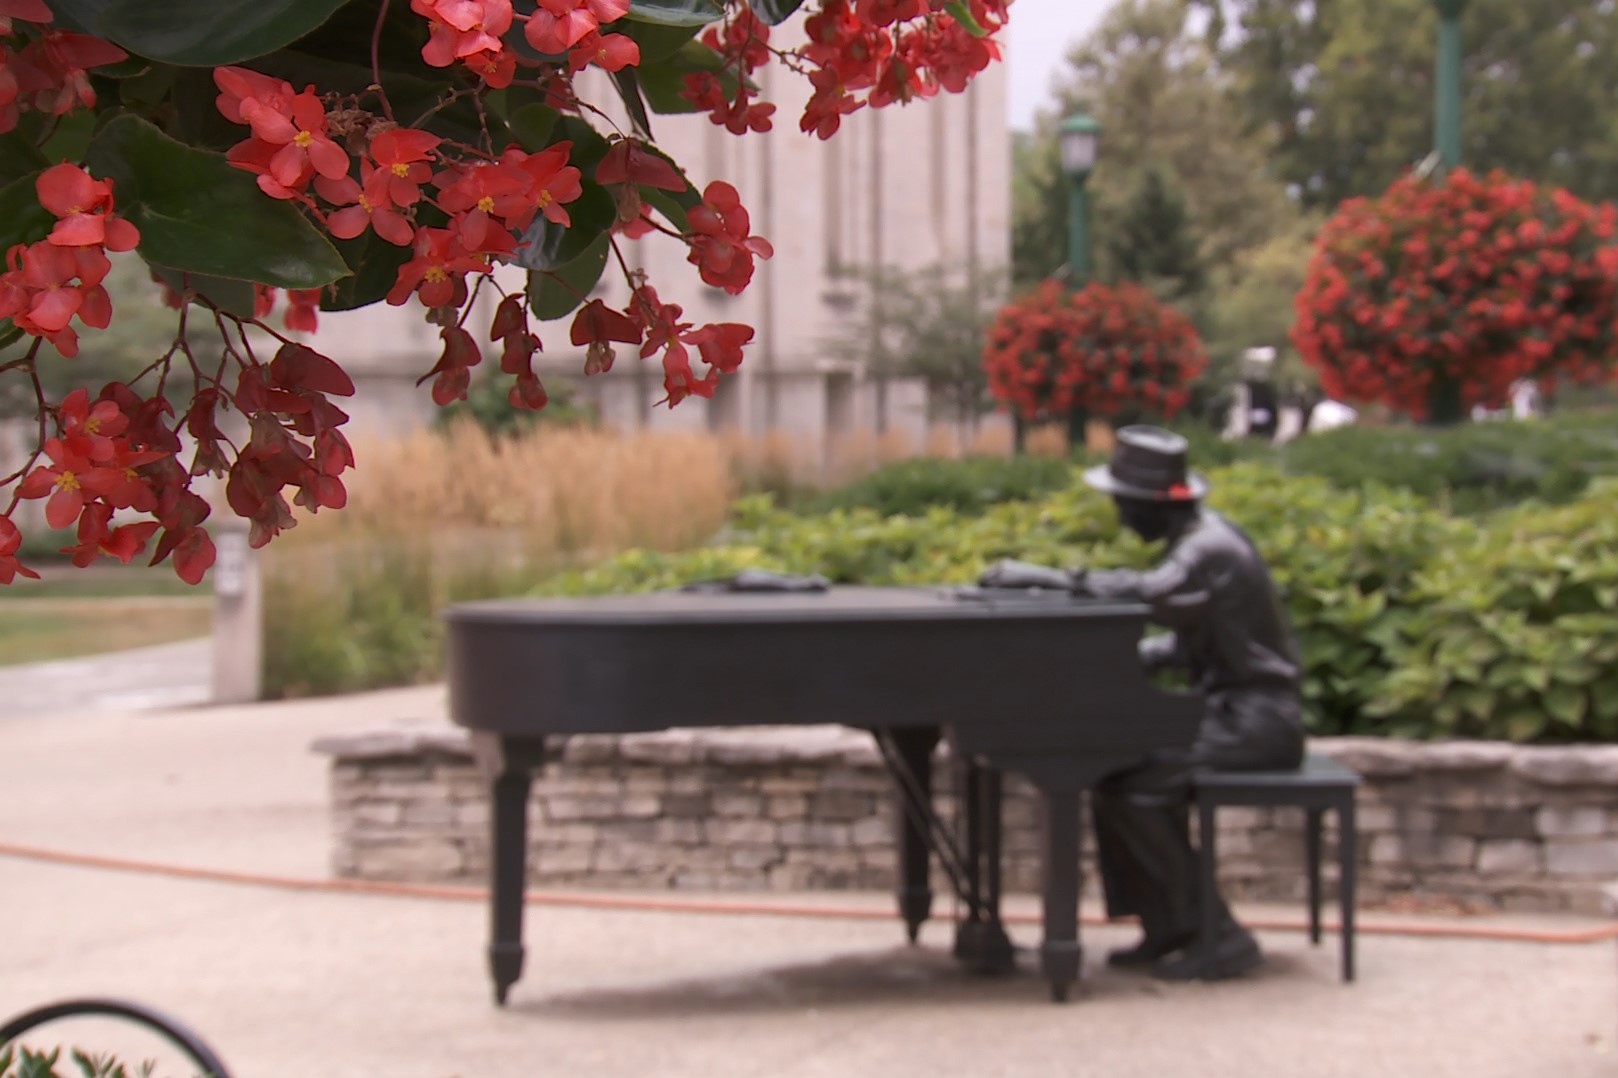 The Hoagy Carmichael statue outside the IU Auditorium, August 2019.